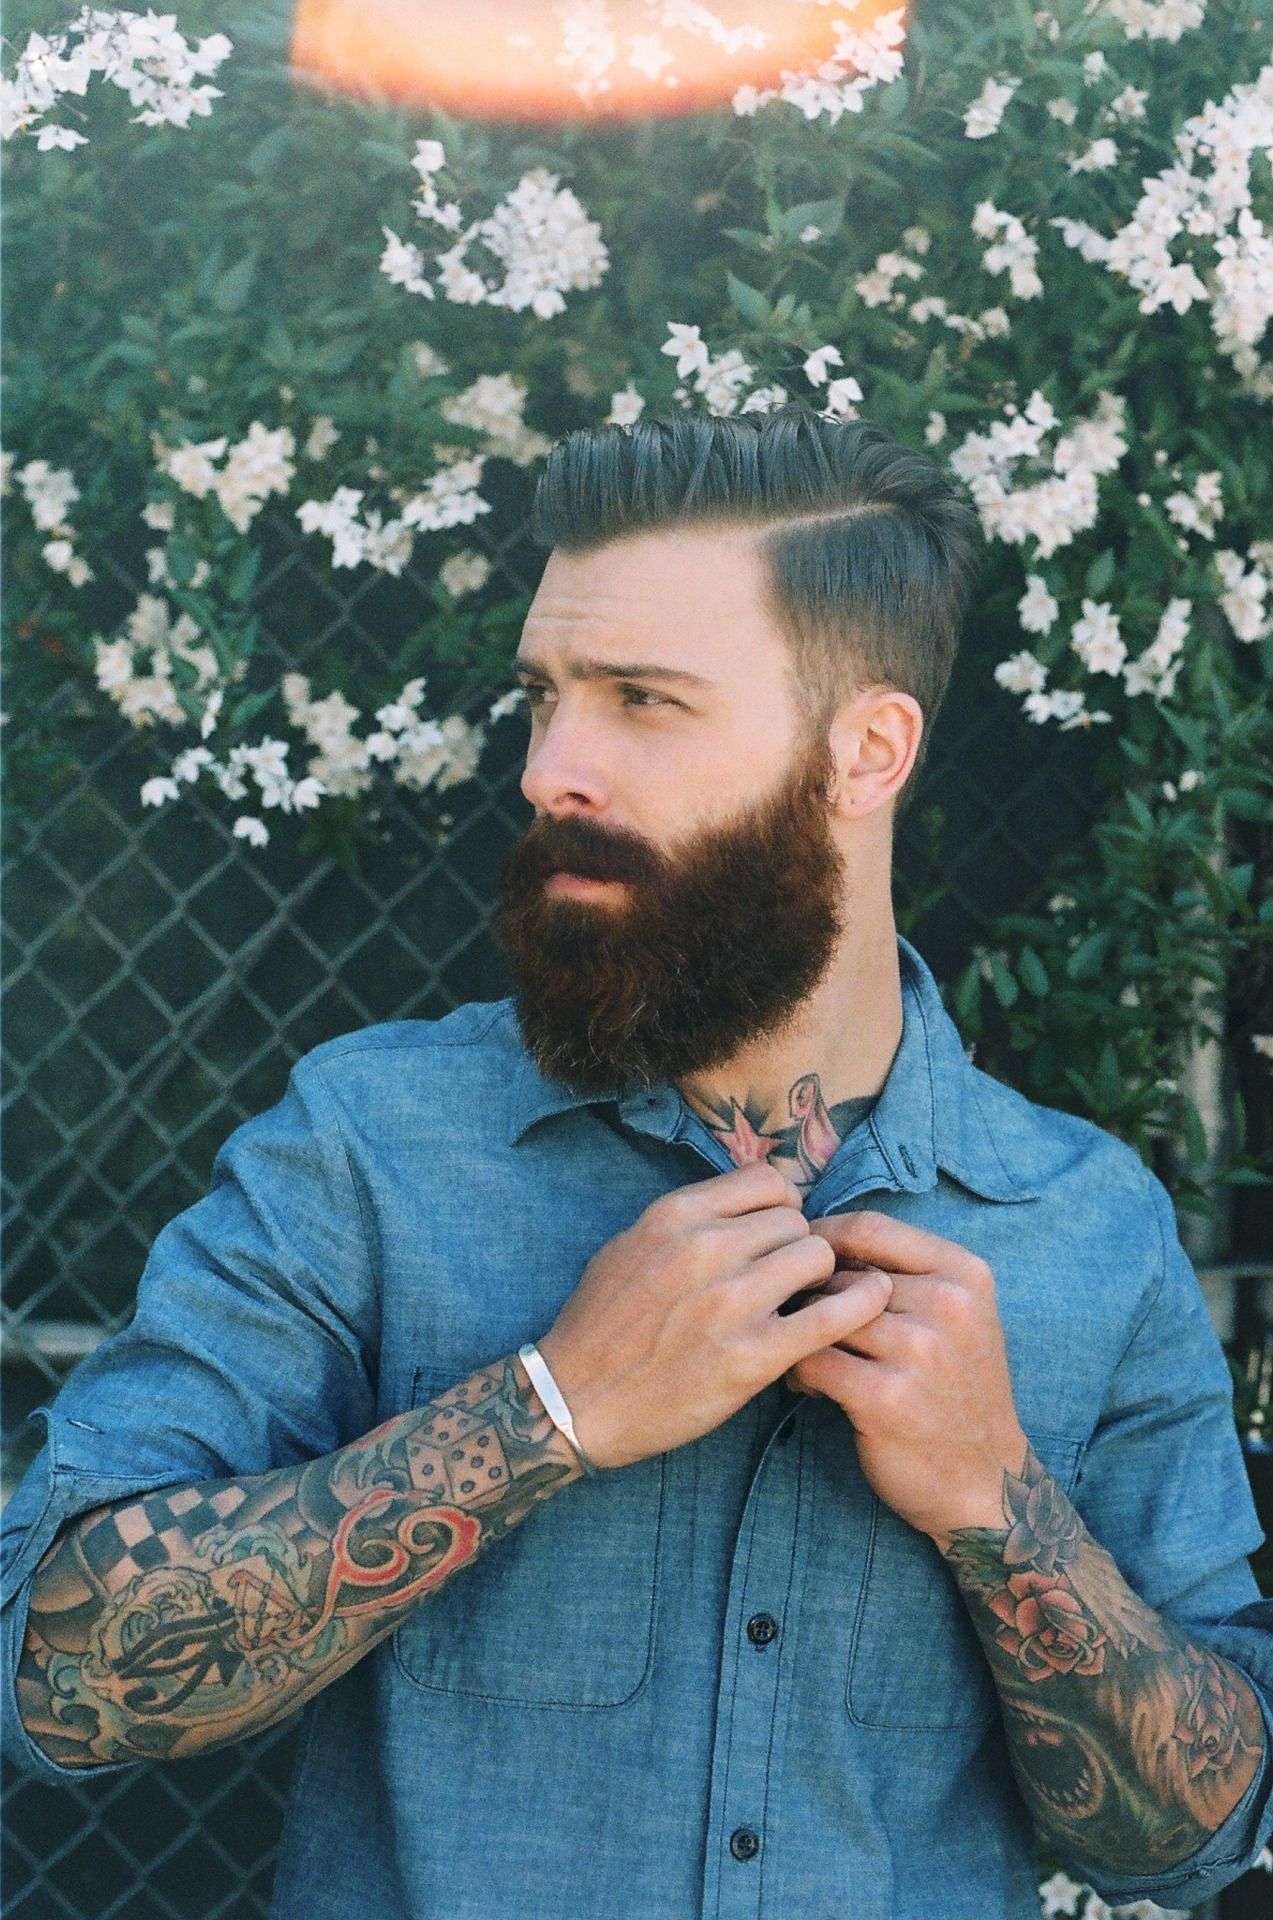 Modern pompadour beard - Explore Pompadour Hairstyle Men S Hairstyle And More